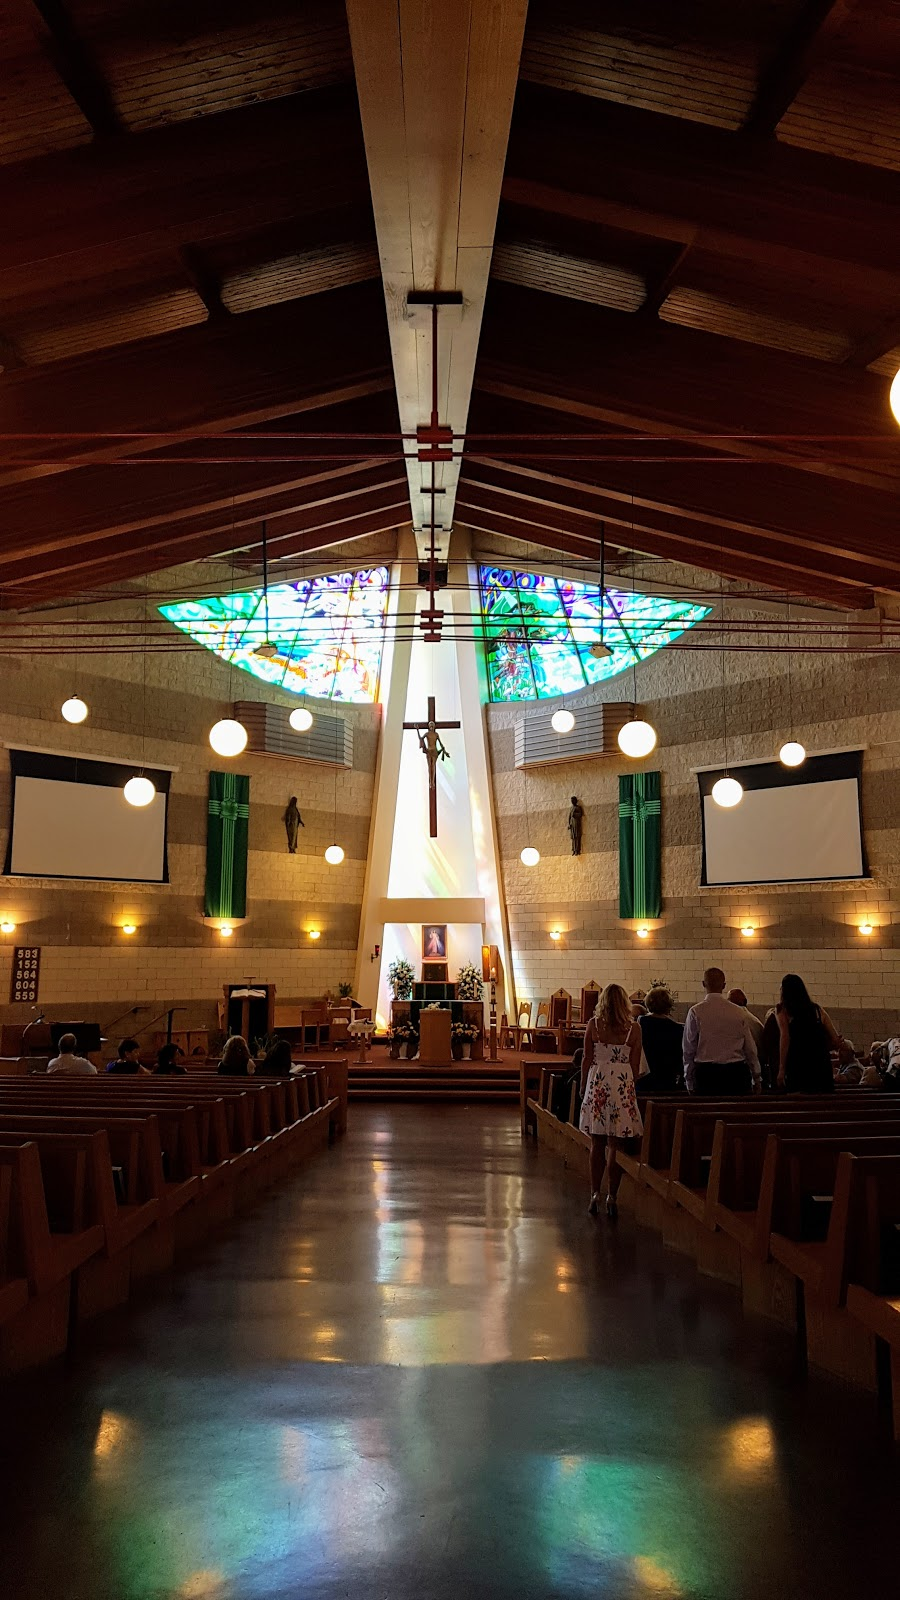 Saint Joseph Roman Catholic Church | church | 135 Livingston Ave, Grimsby, ON L3M 5J6, Canada | 9059452661 OR +1 905-945-2661